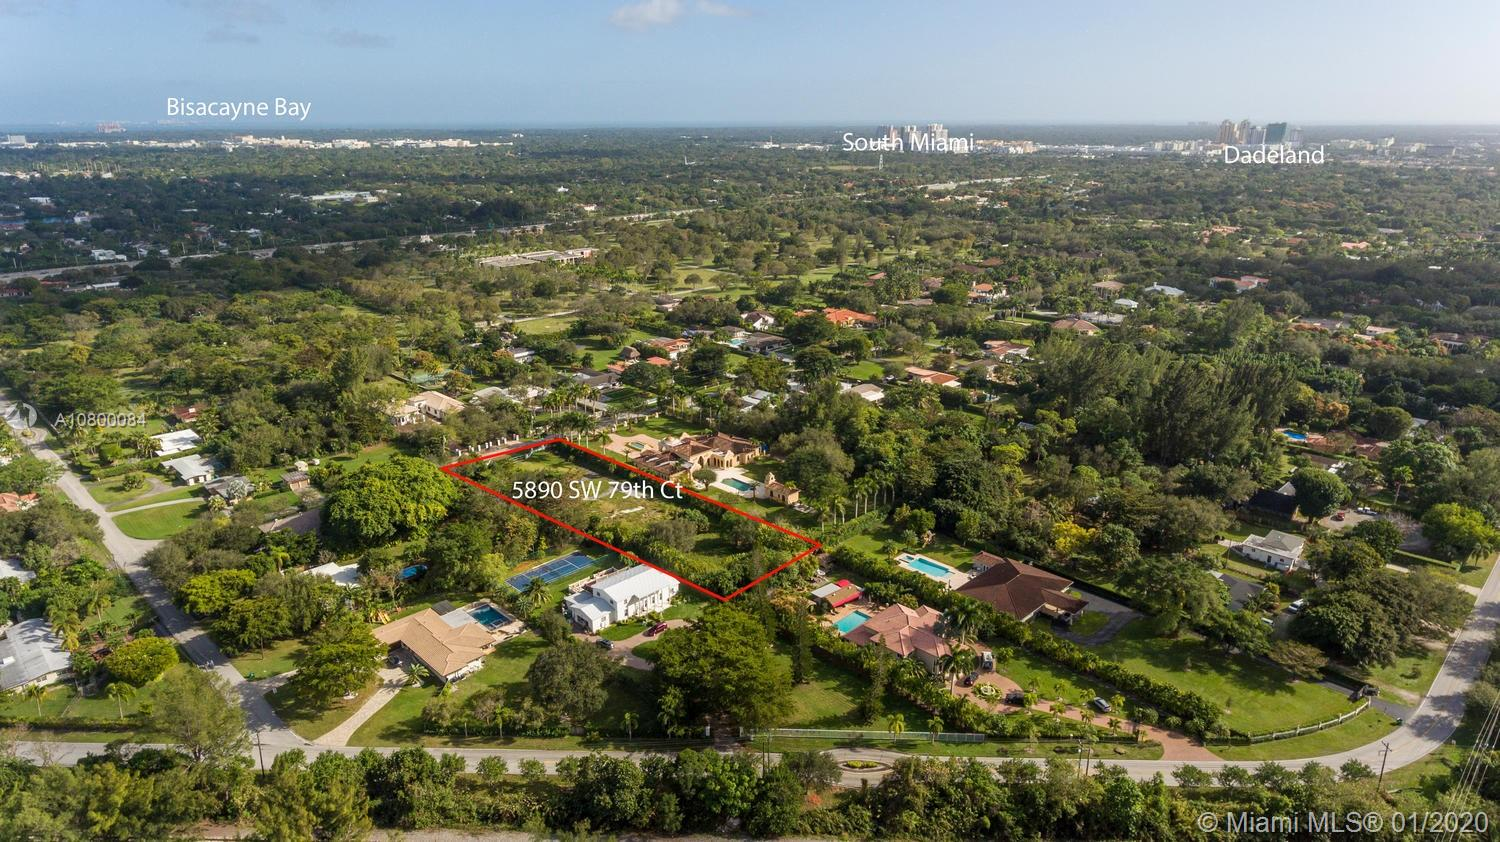 5890 SW 79th Ct - Miami, Florida